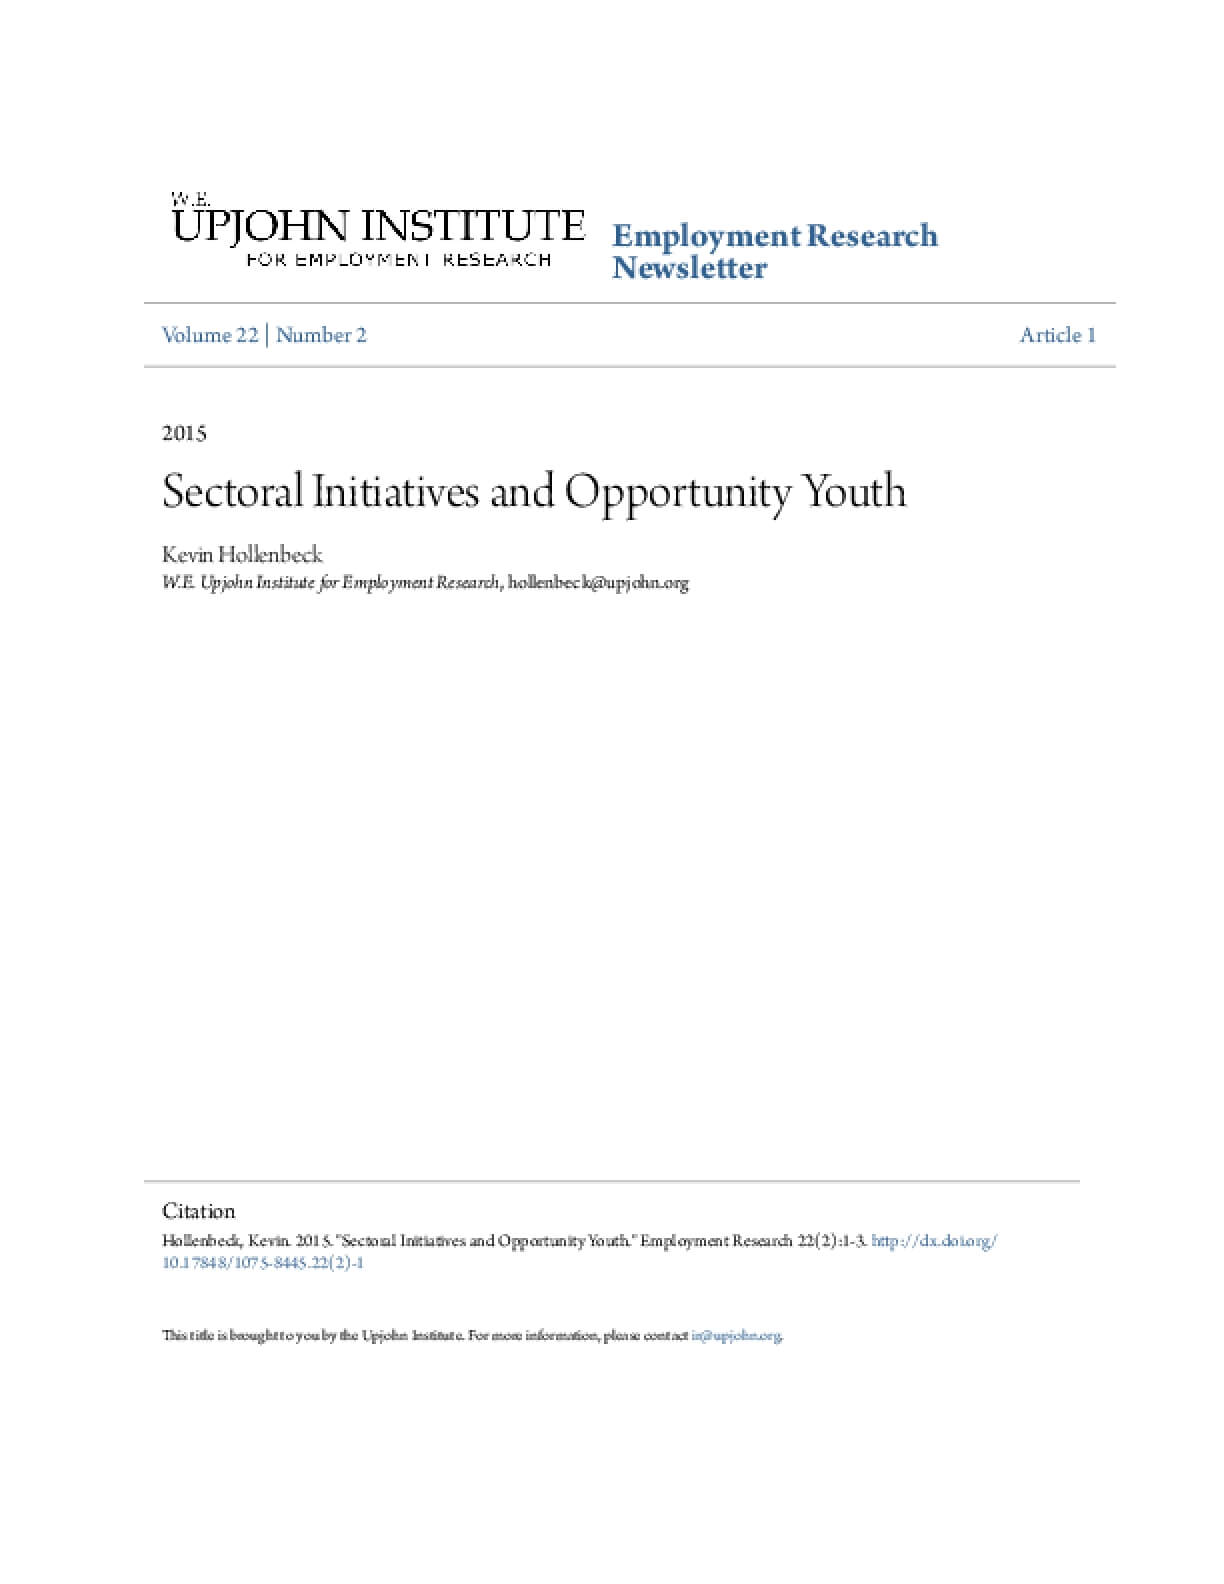 Sectoral Initiatives and Opportunity Youth